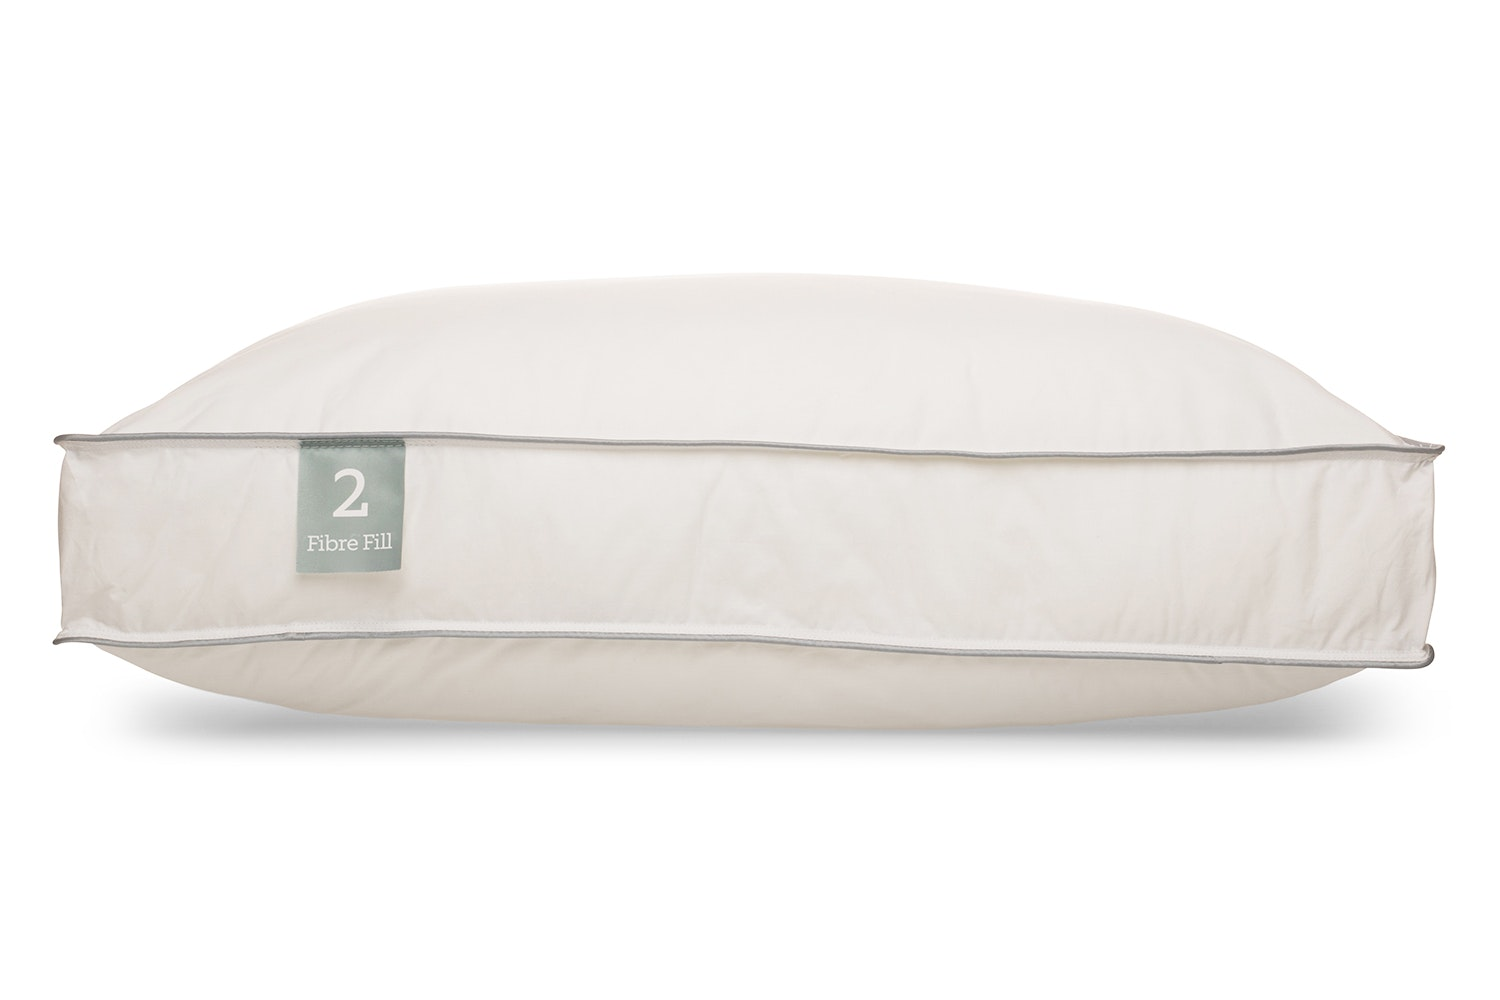 Sleep Studio Pillow | Fibre Fill | 2